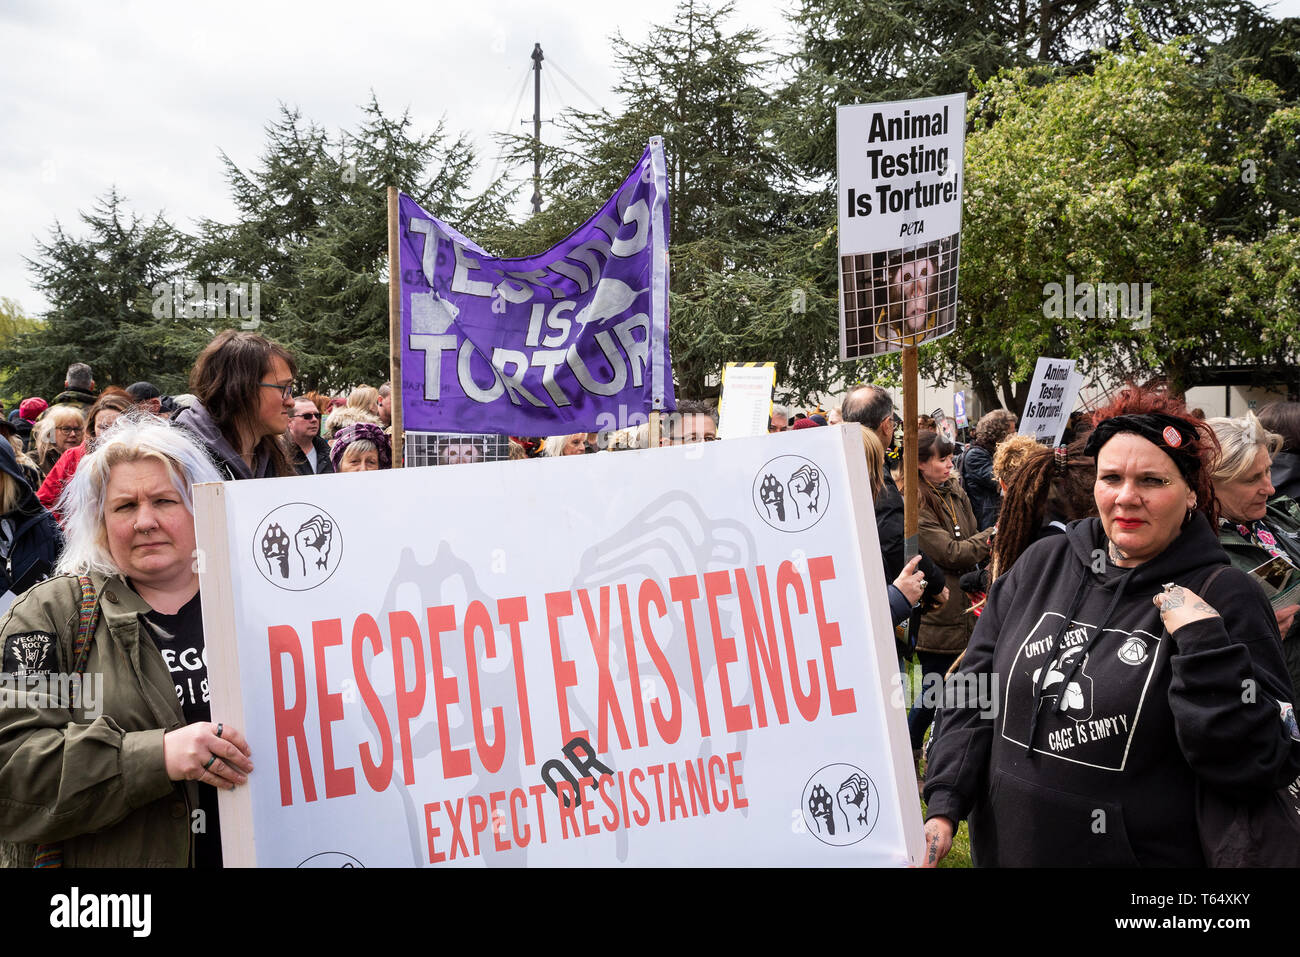 Oxford World Day for Animals in Laboratories. Activists gathered in Oxfords Oxpens Park making ready to march through the city centre. - Stock Image